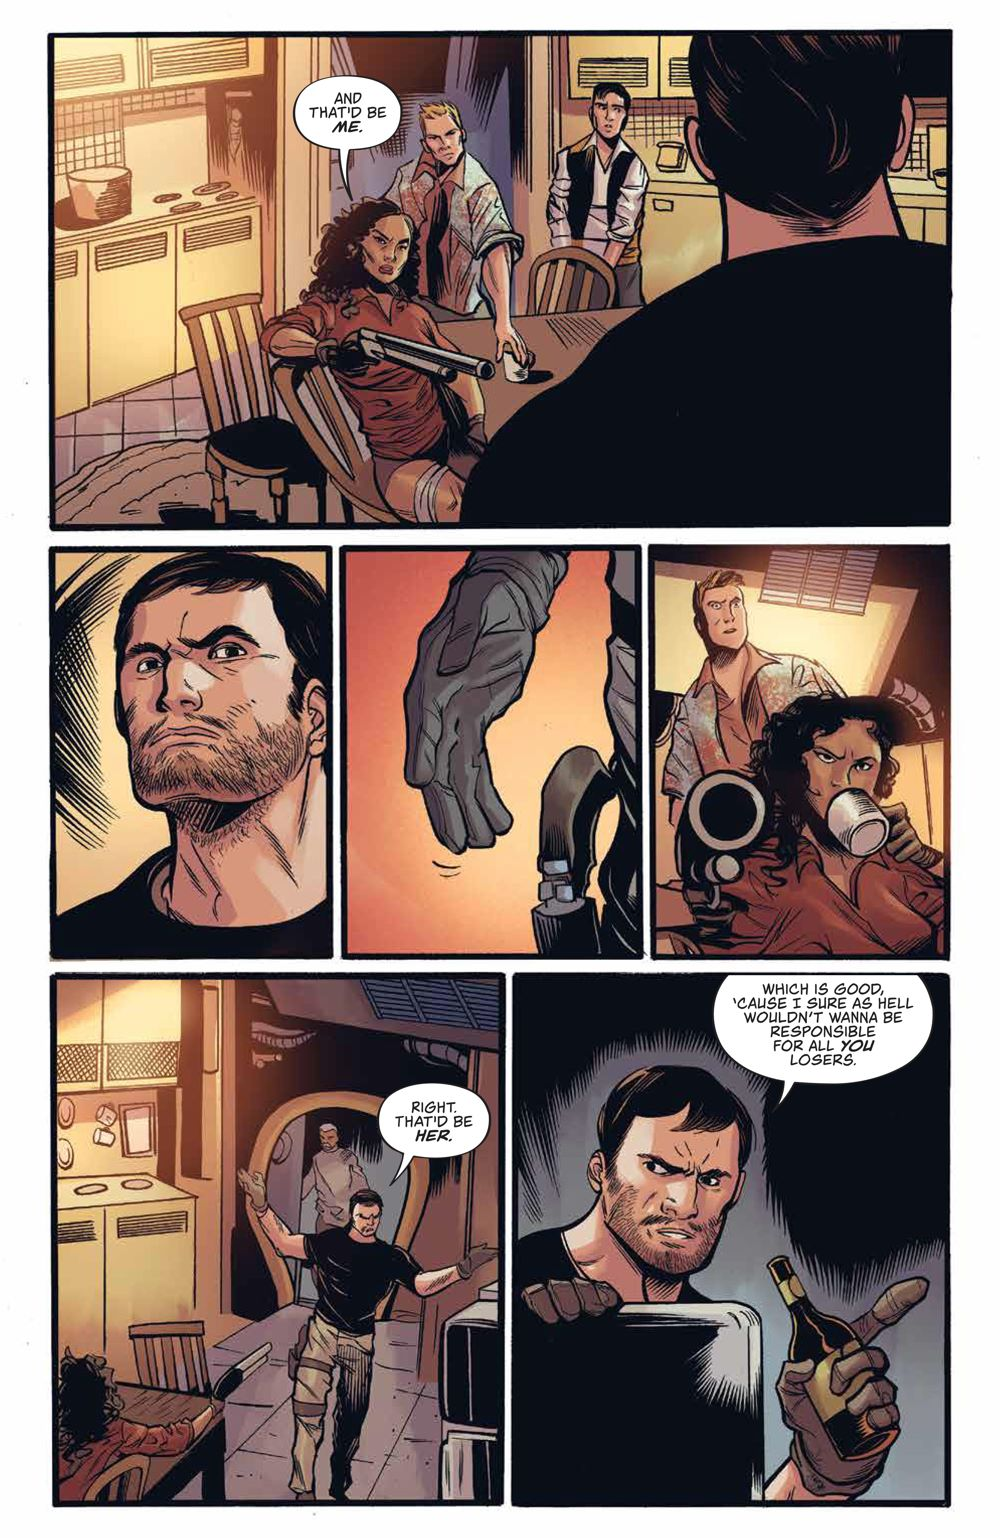 Firefly_UnificationWar_v2_SC_PRESS_16 ComicList Previews: FIREFLY THE UNIFICATION WAR VOLUME 2 TP